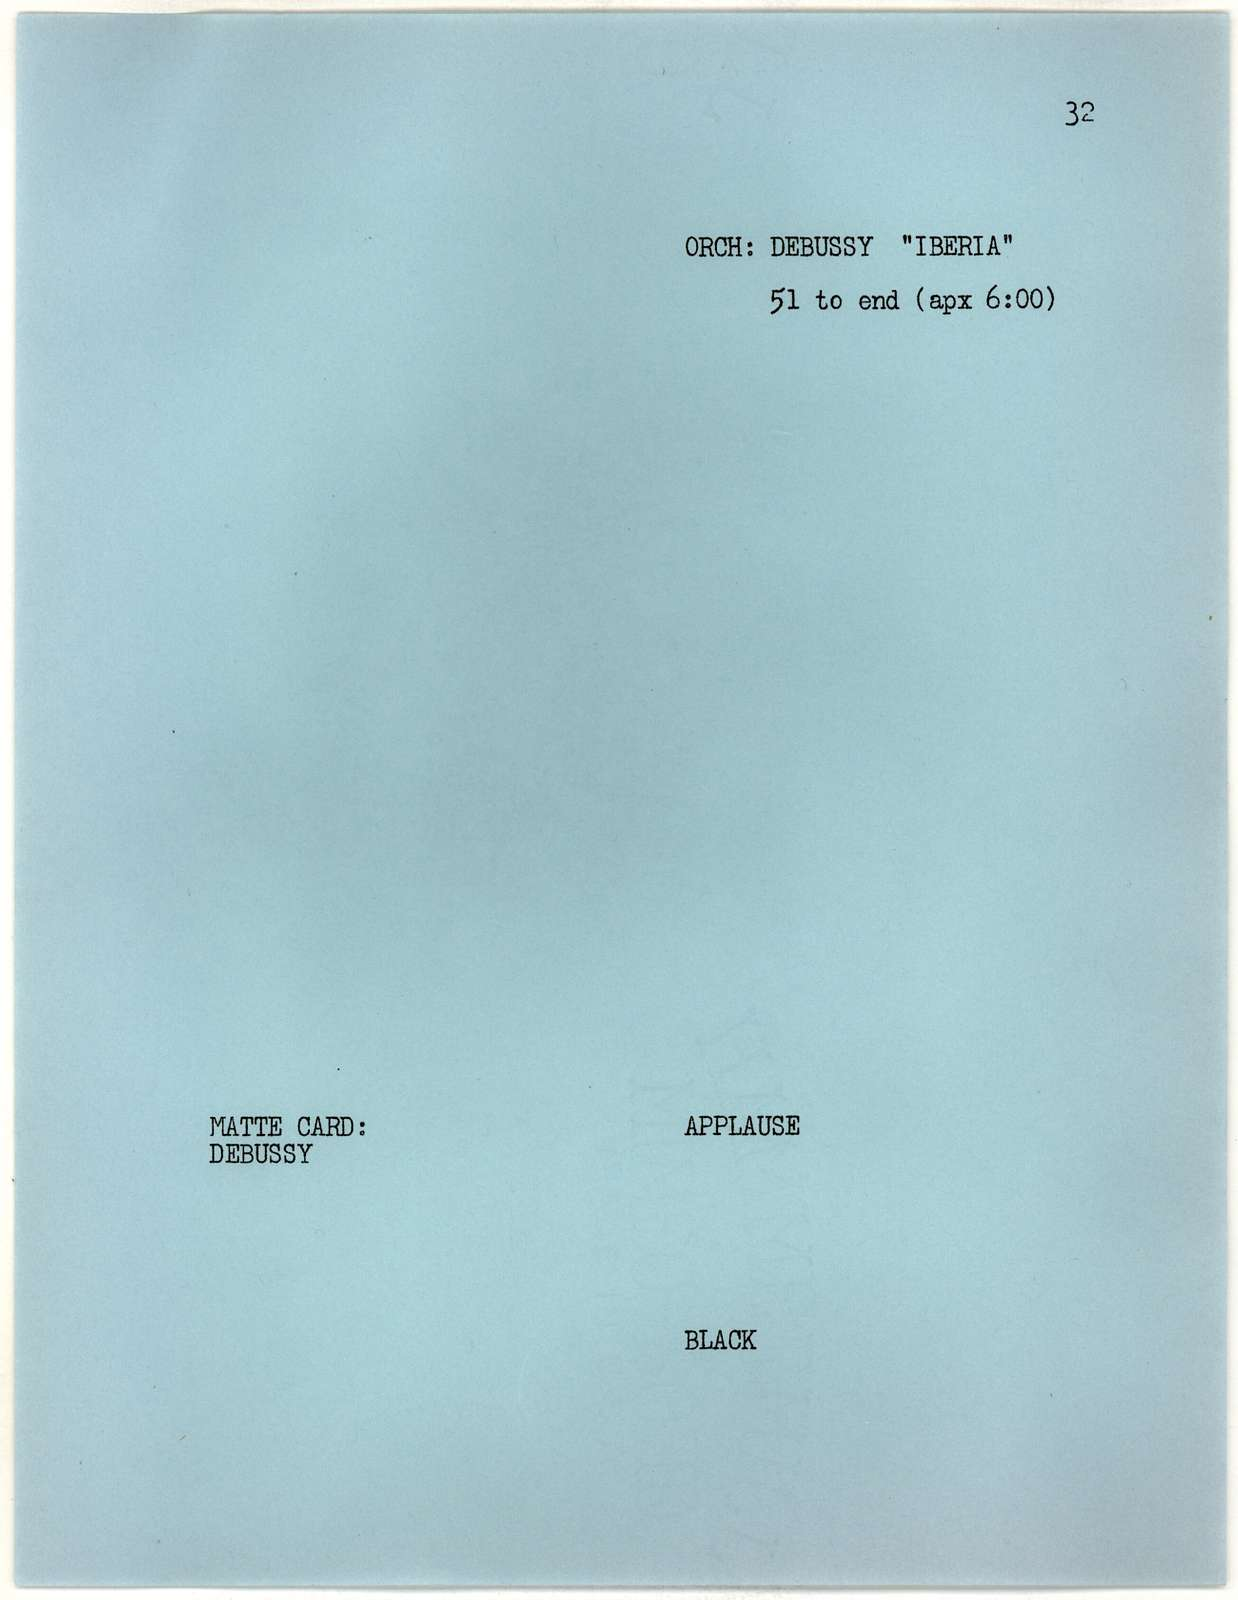 Young People's Concerts Scripts: The Sound of an Orchestra typescript on blue paper with emendations in red, blue and black pencil